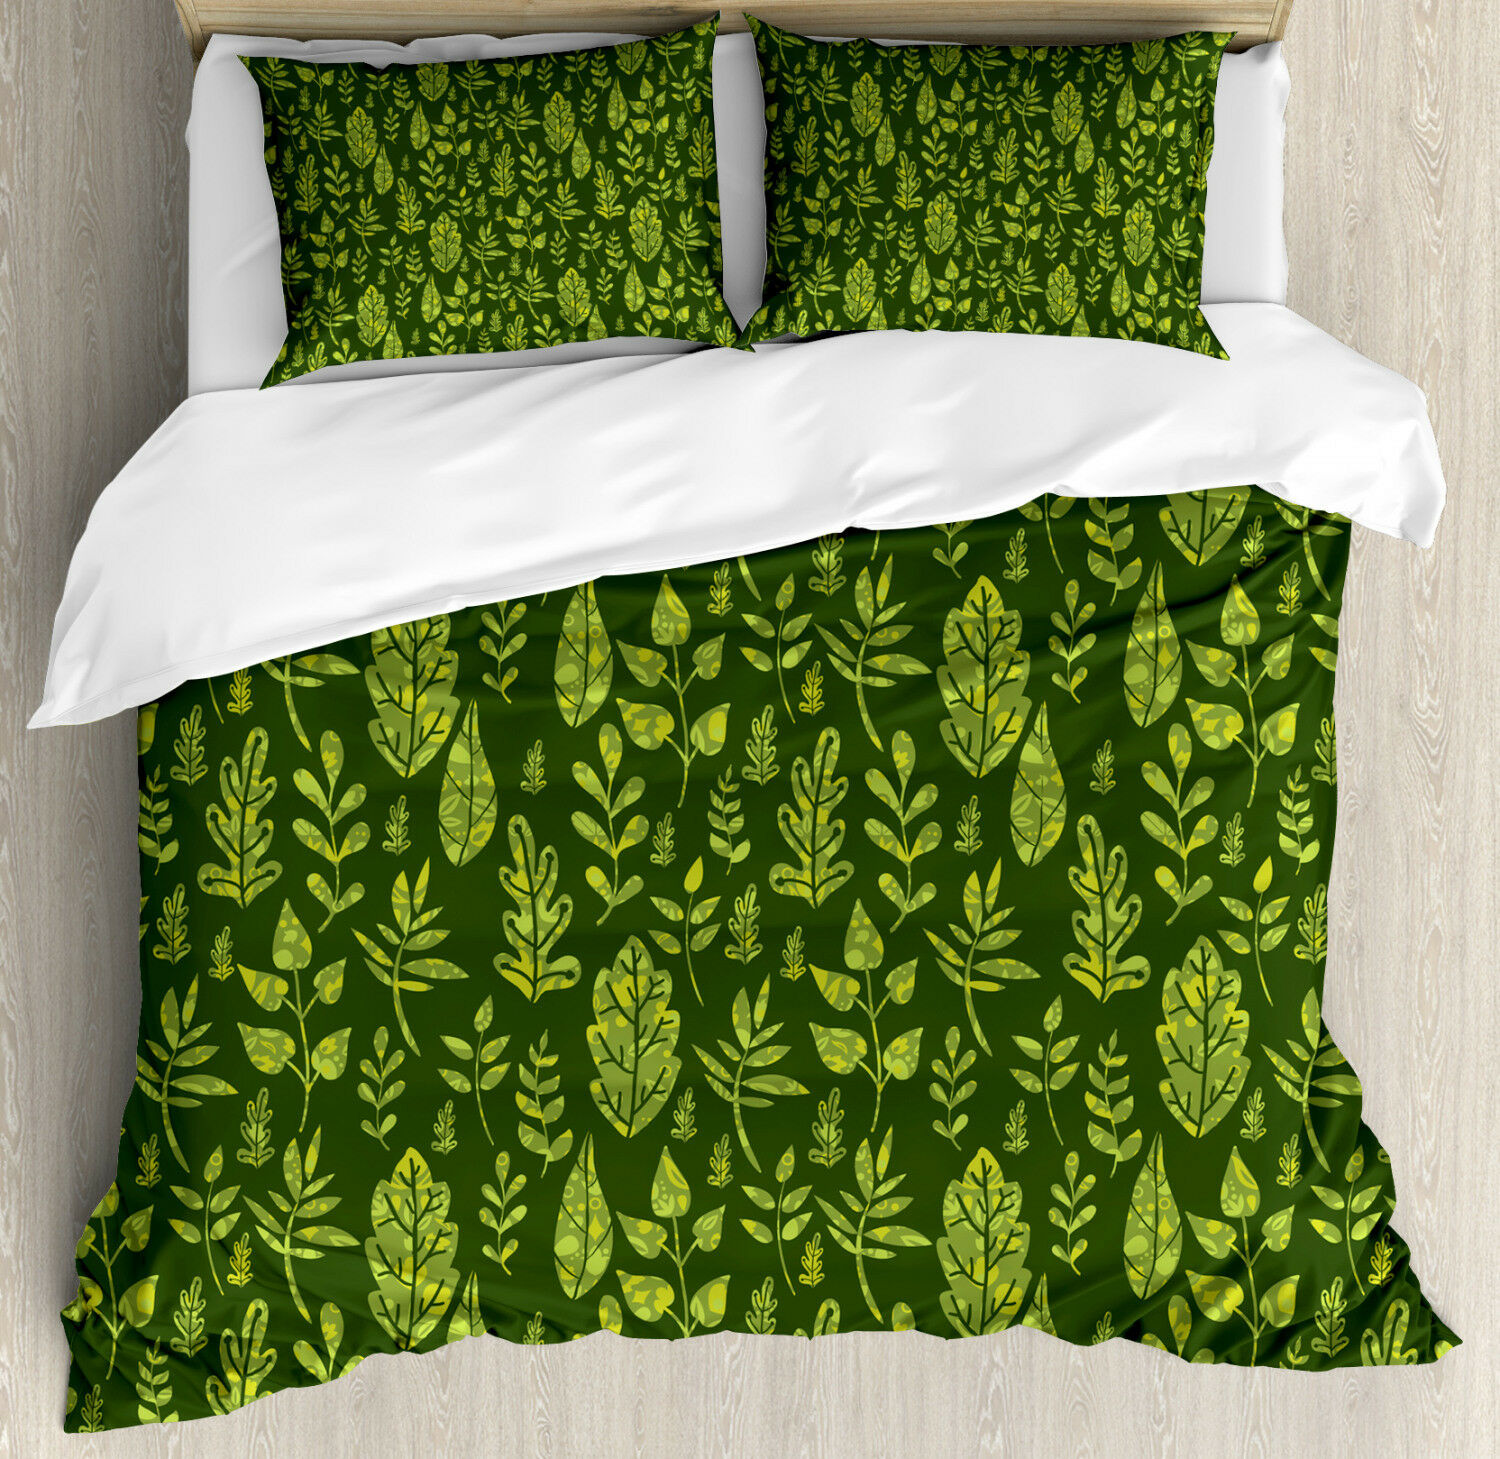 Sage Duvet Cover Set with Pillow Shams Patterned Green Leaves Print